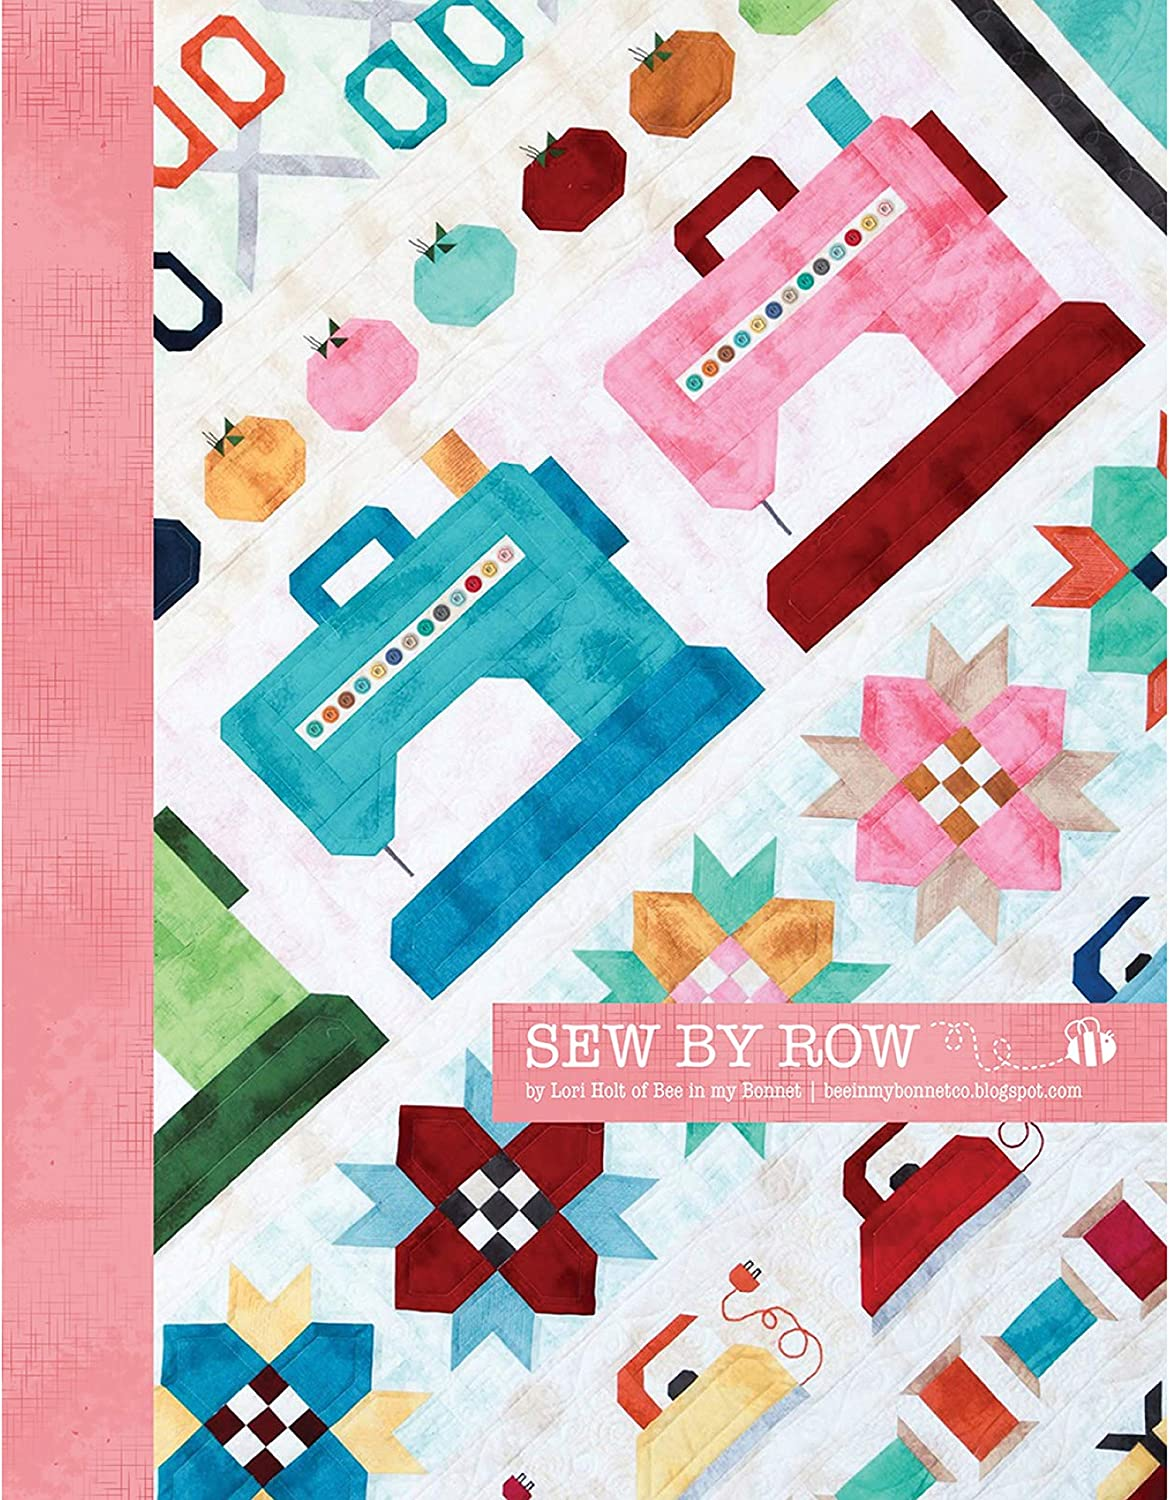 Sew by Row Quilt Pattern by Lori Holt of Bee in my Bonnet